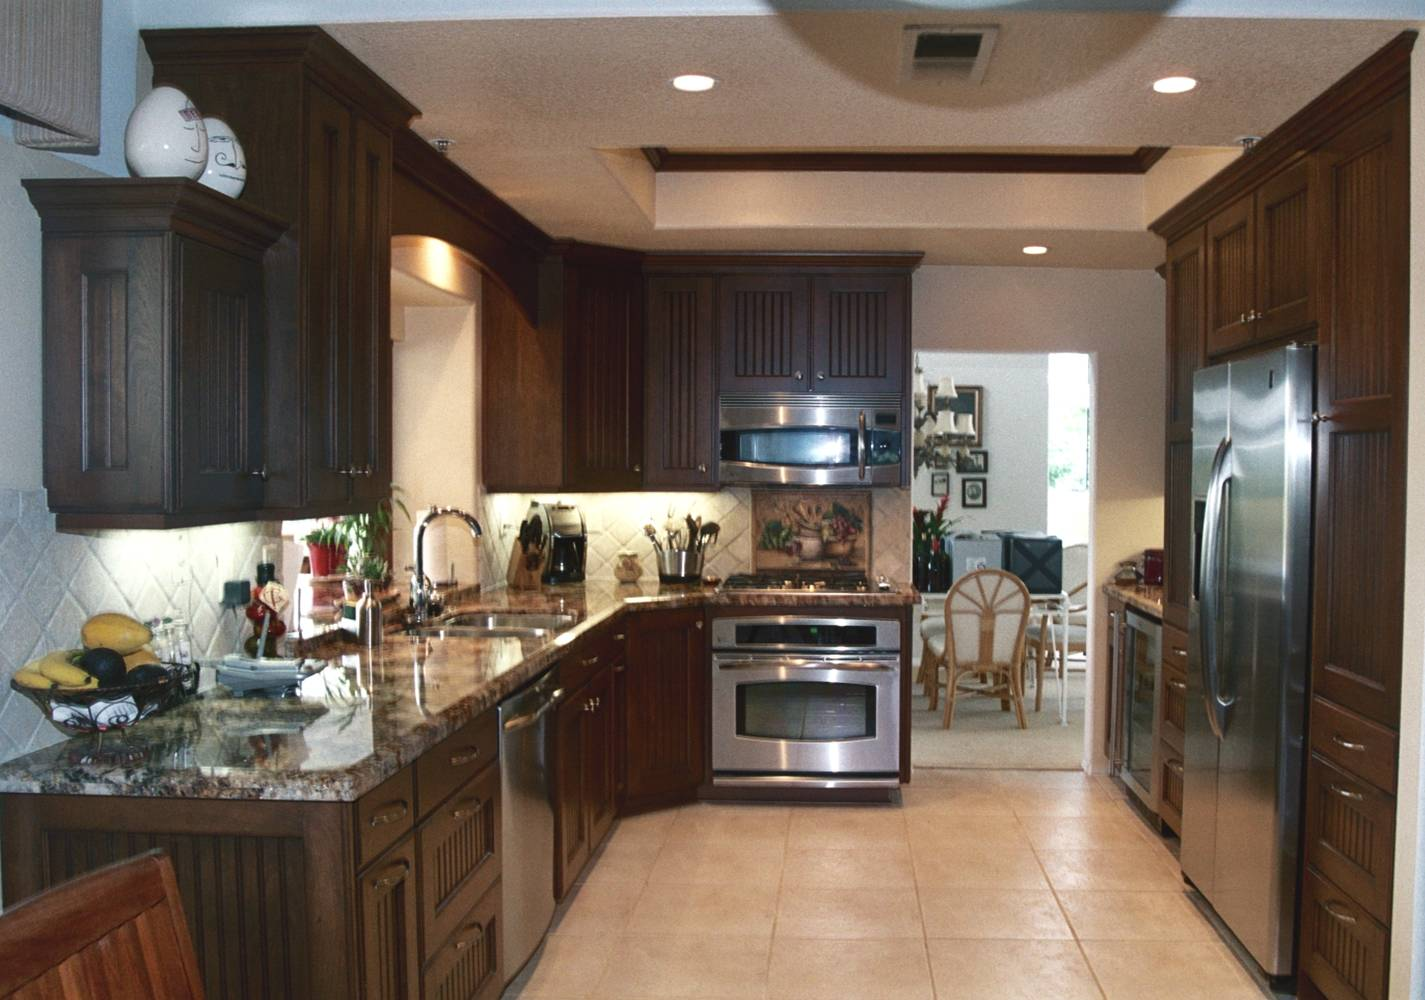 Plus Kitchen Remodeling - Sample Photo #9